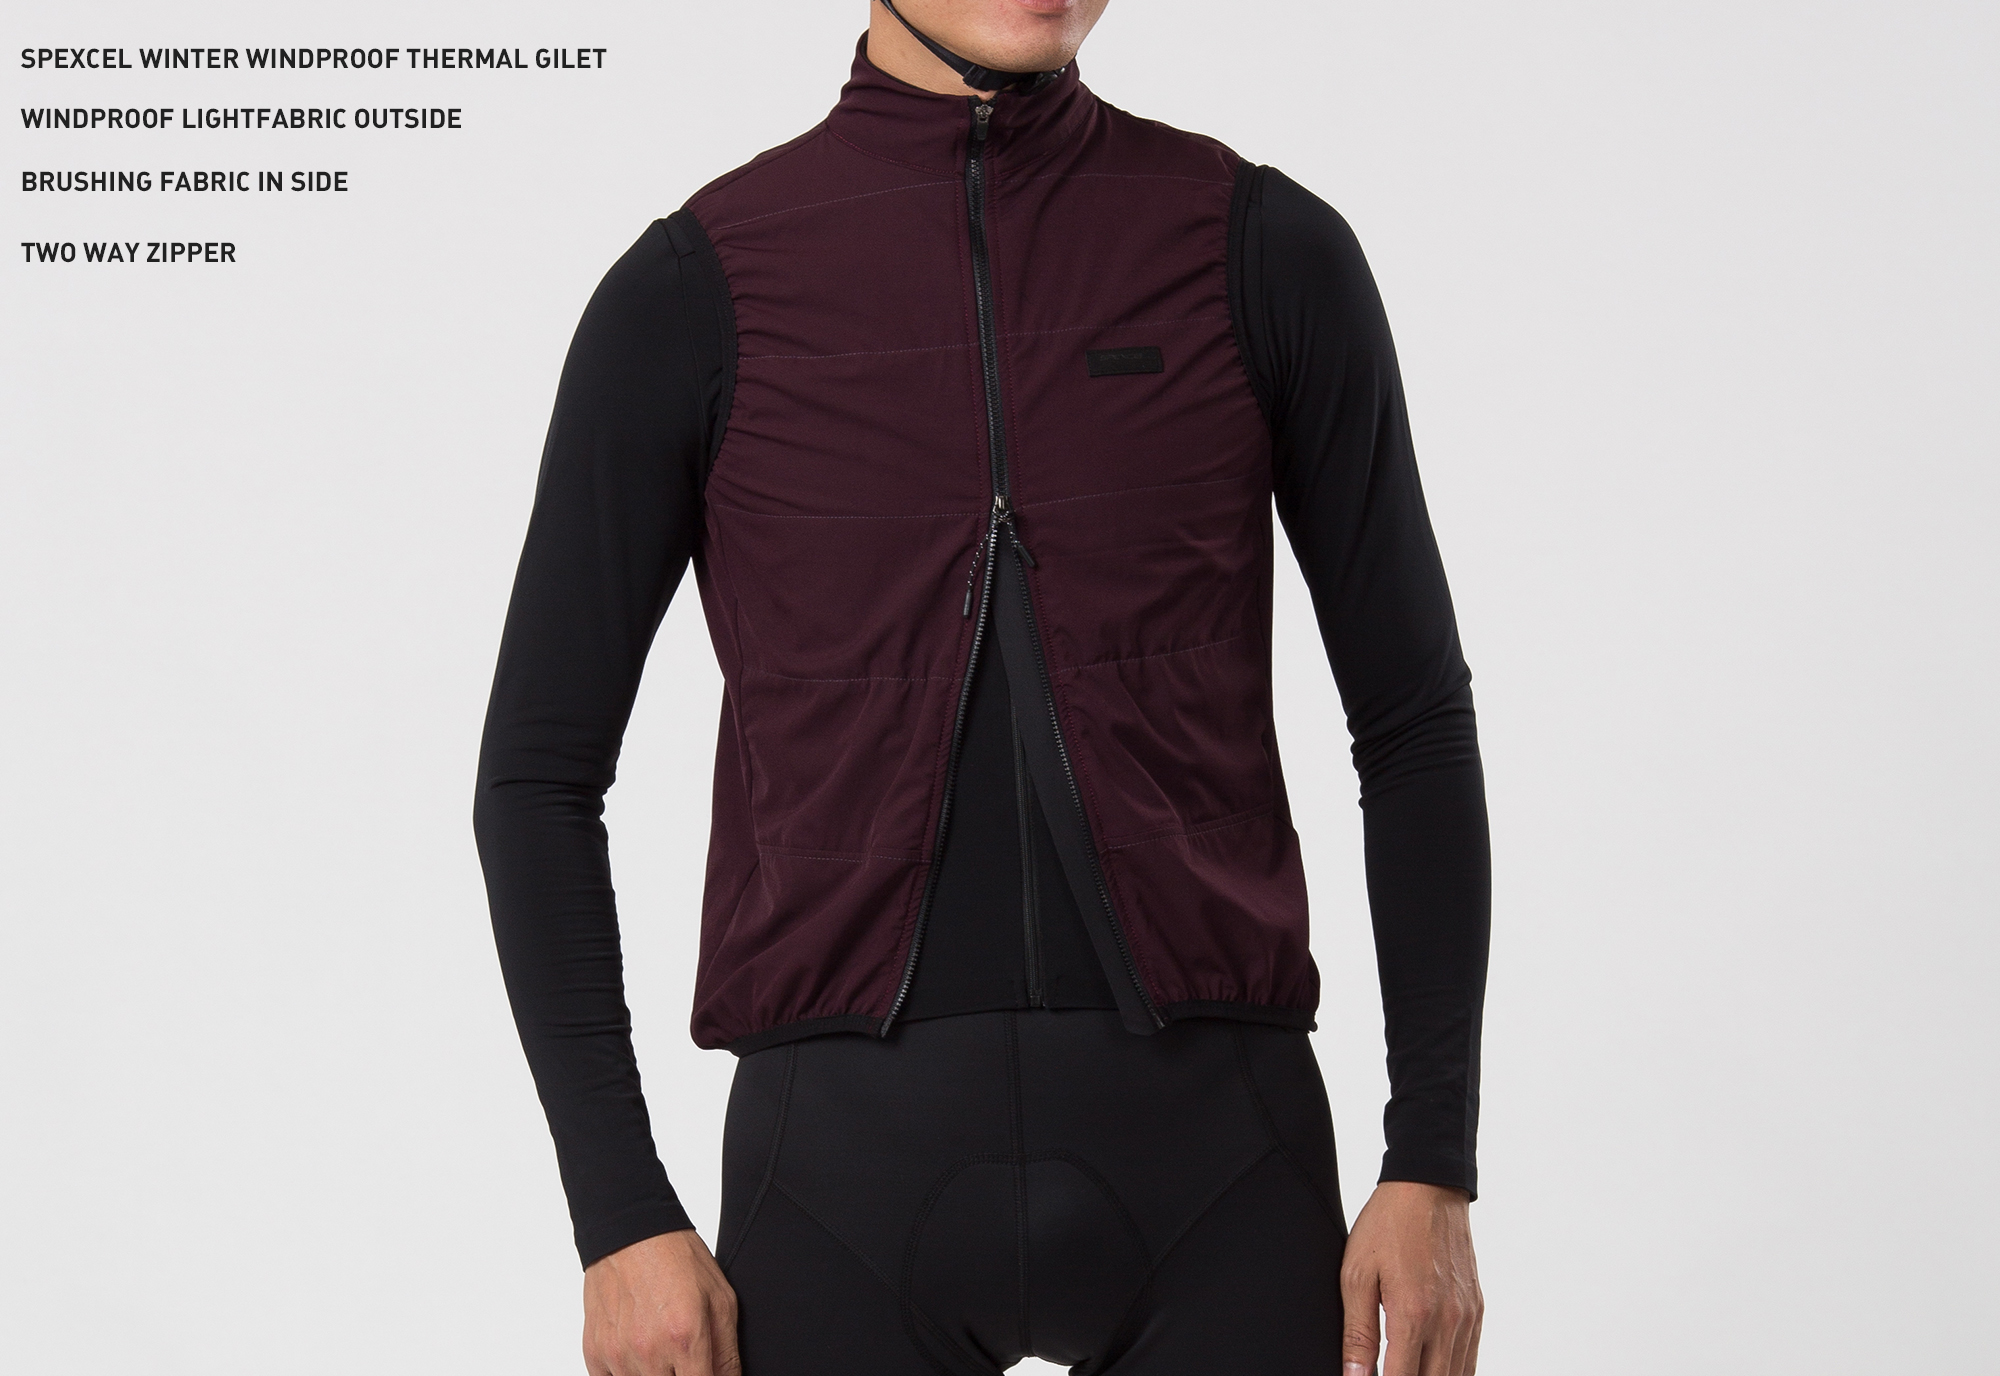 SPEXCEL 2019 New Winter Urban Ride Windproof And Thermal Fleece Cycling GILET 2 Layer Cycling Windbreak Vest Two Way Zip